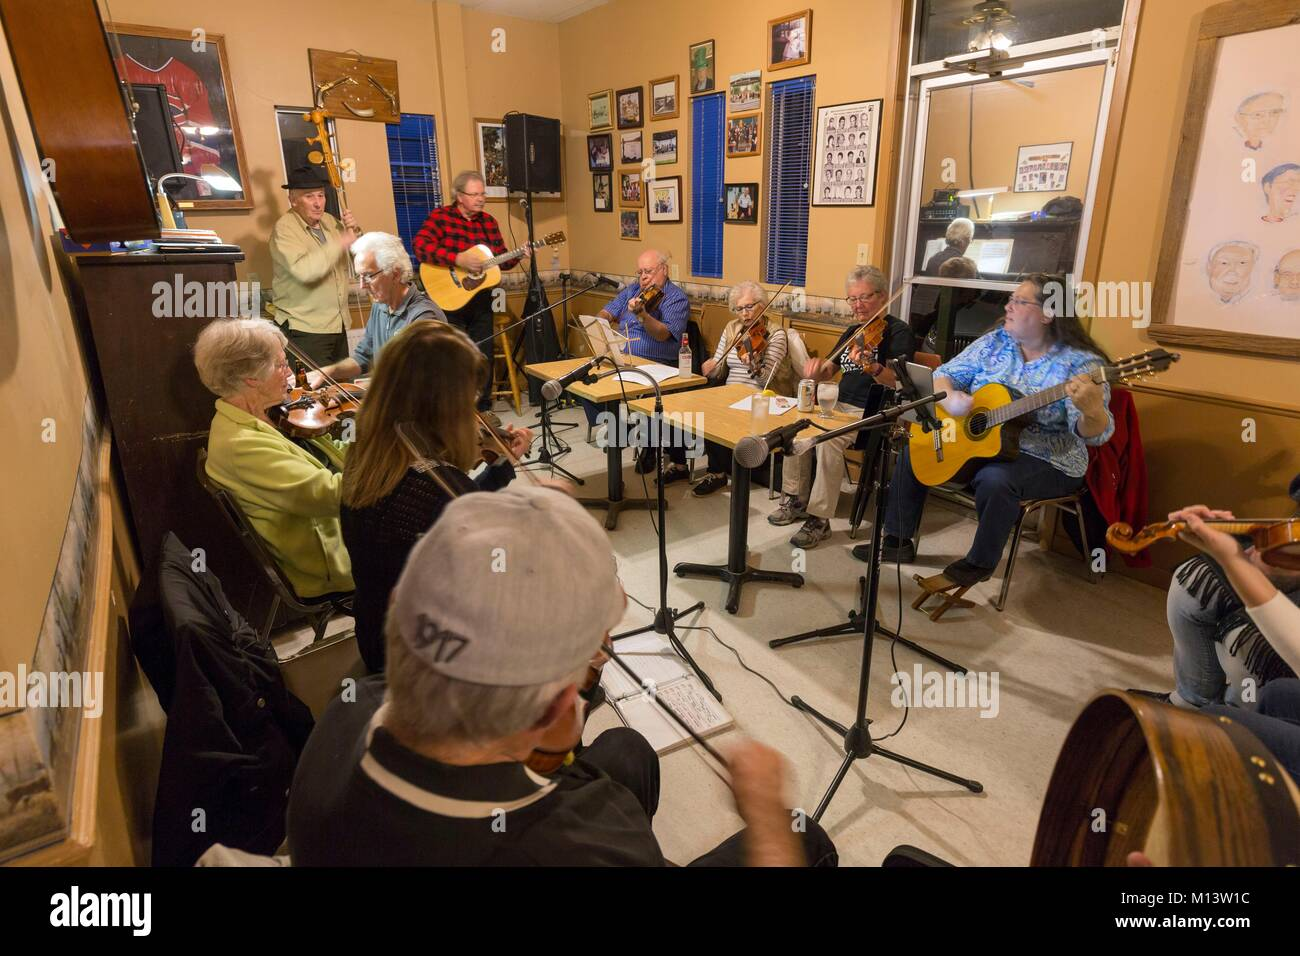 Canada, Province of Quebec, Outaouais, Pontiac region, Chichester, George's Regal Beagle bar, fiddlers night - Stock Image